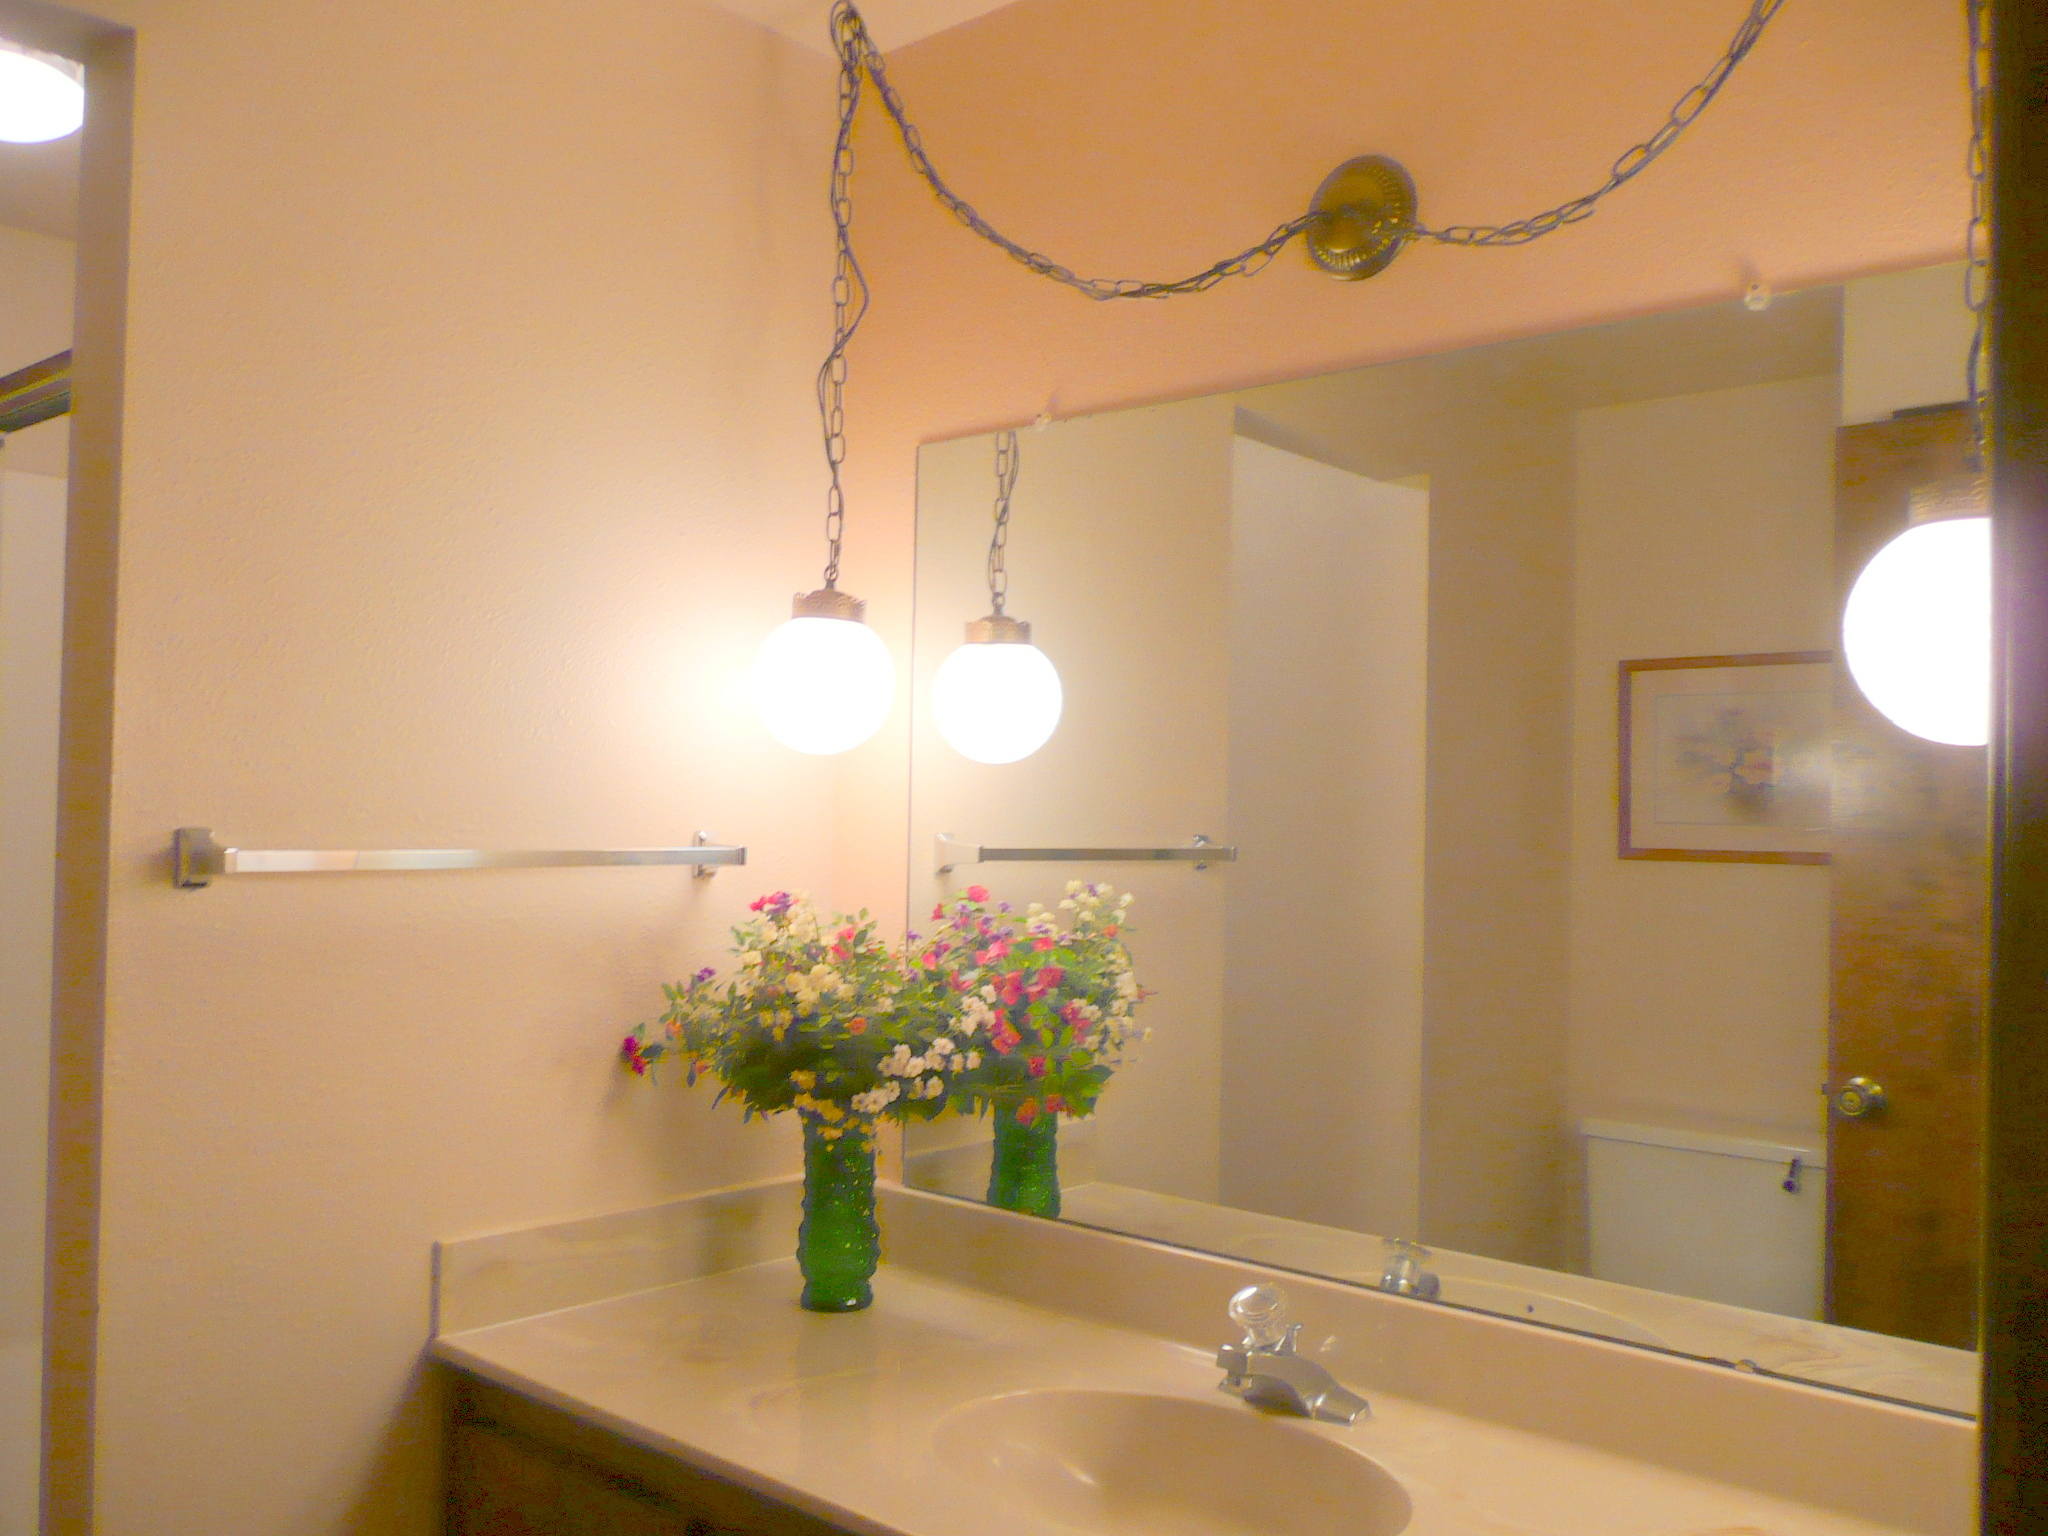 Bathroom Lighting Tips updating bathroom vanity lighting – tips for home sellers | home